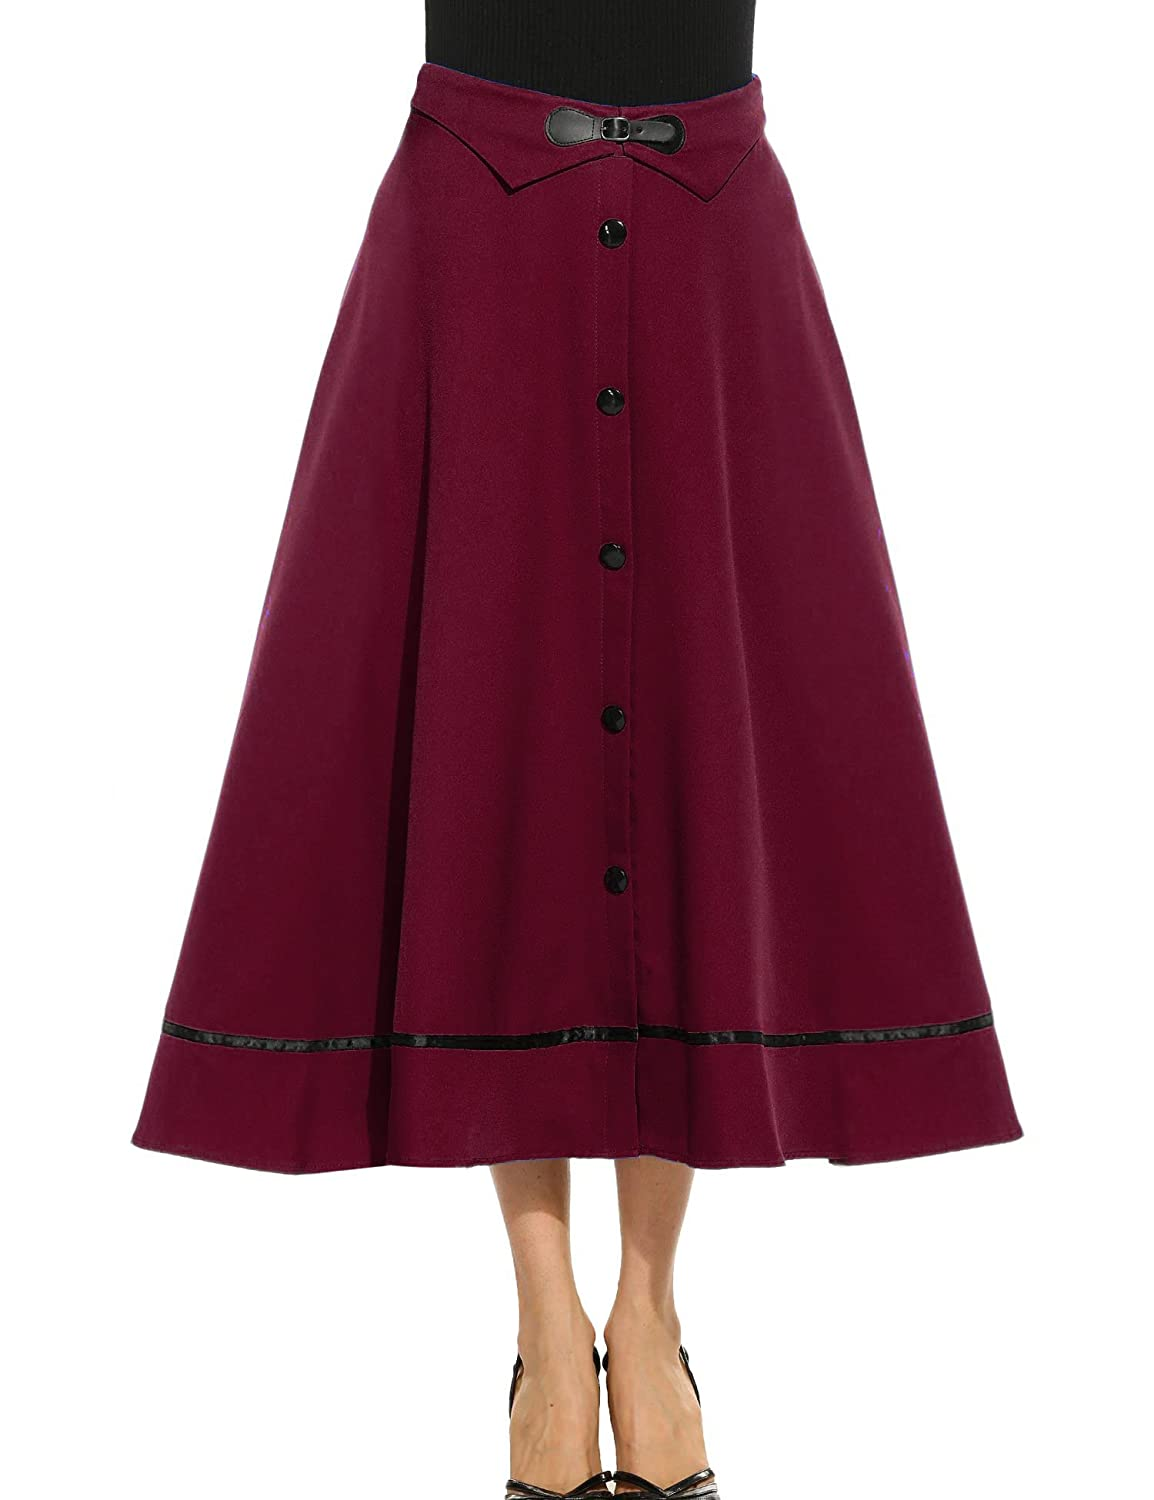 1900-1910s Clothing ANGVNS Womens Vintage High Waist Button Down Pleated Swing Skirt $18.99 AT vintagedancer.com